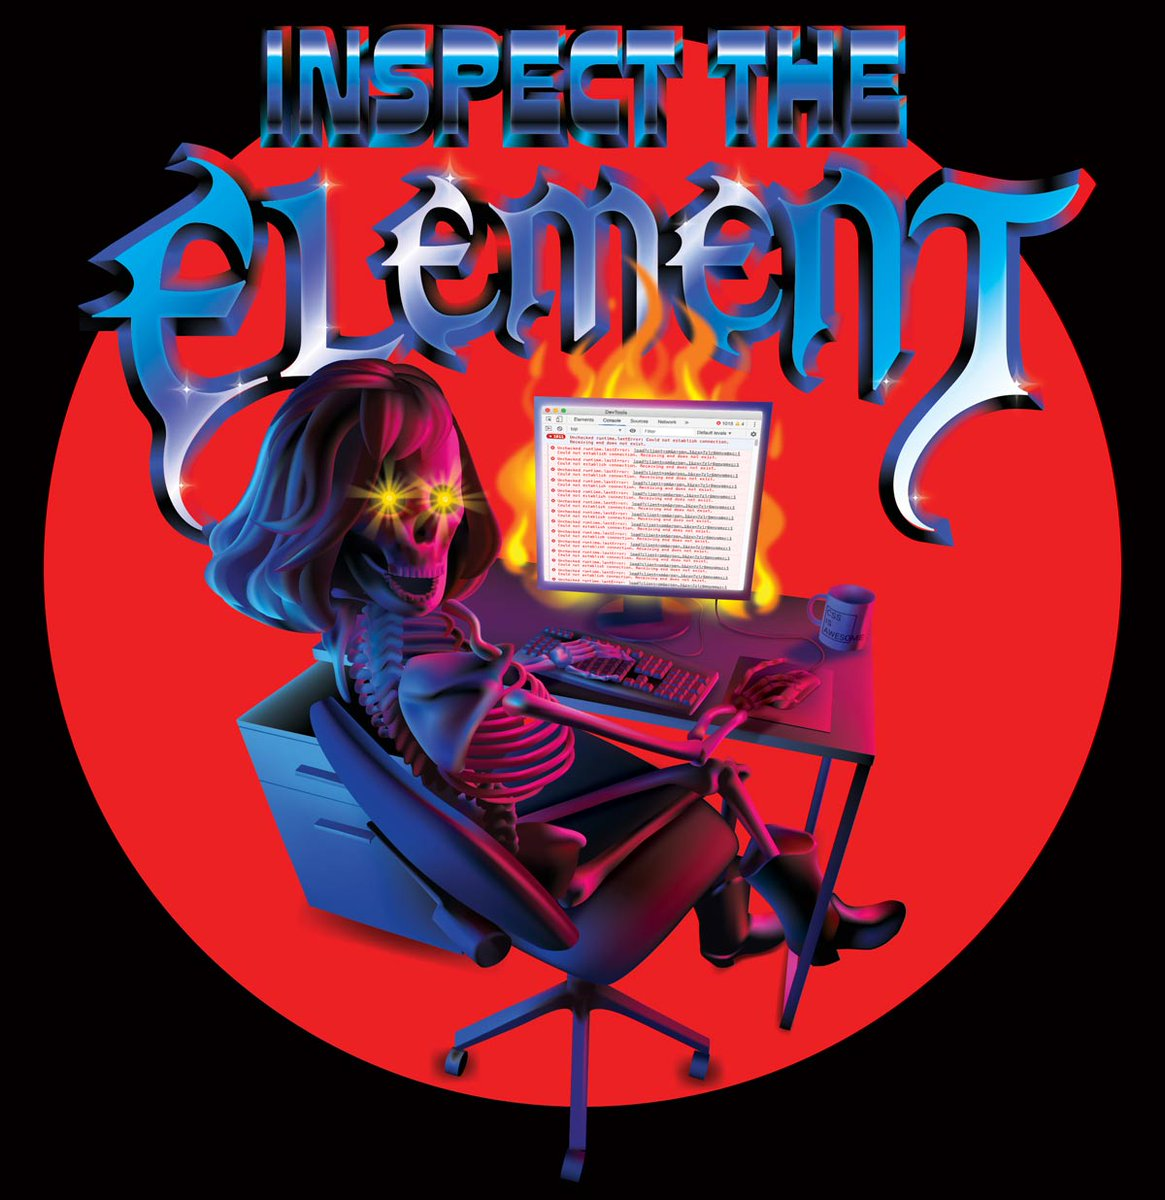 when I inspect the element